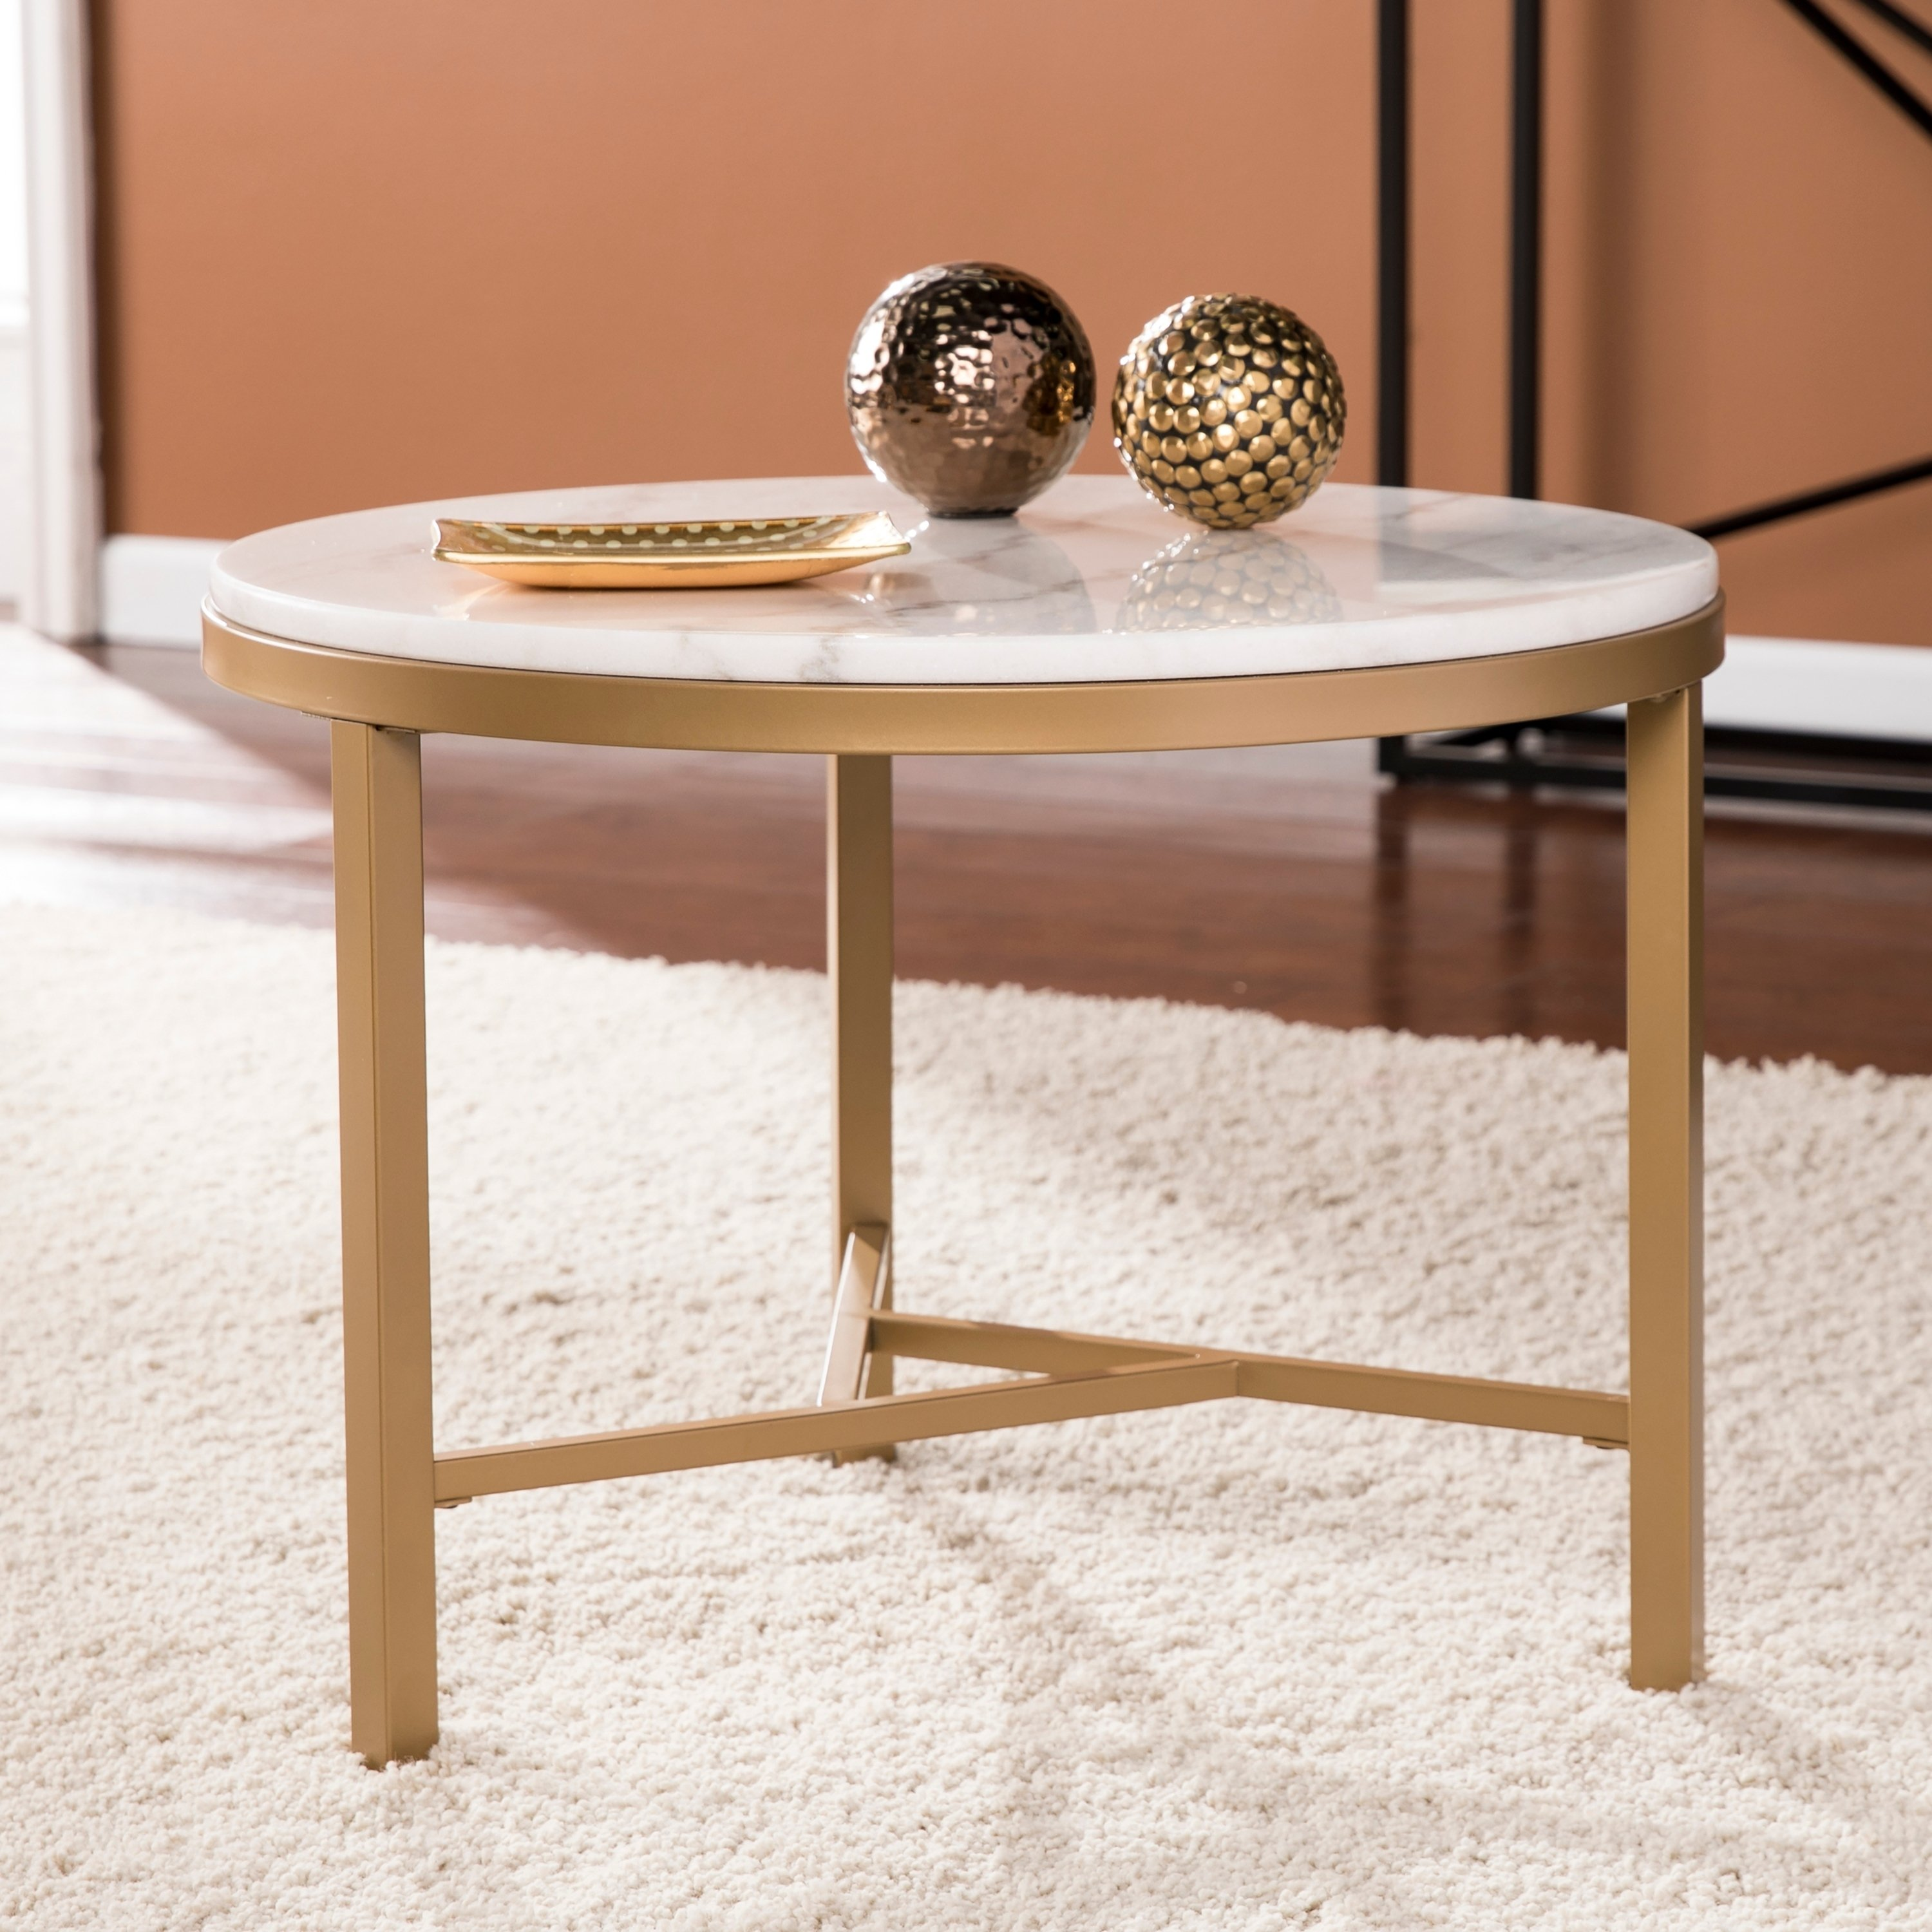 harper blvd garzeaux champagne ivory marble accent table free shipping today modern side lamp kitchen door knobs ikea kids storage diy narrow console windham coffee bronze blue